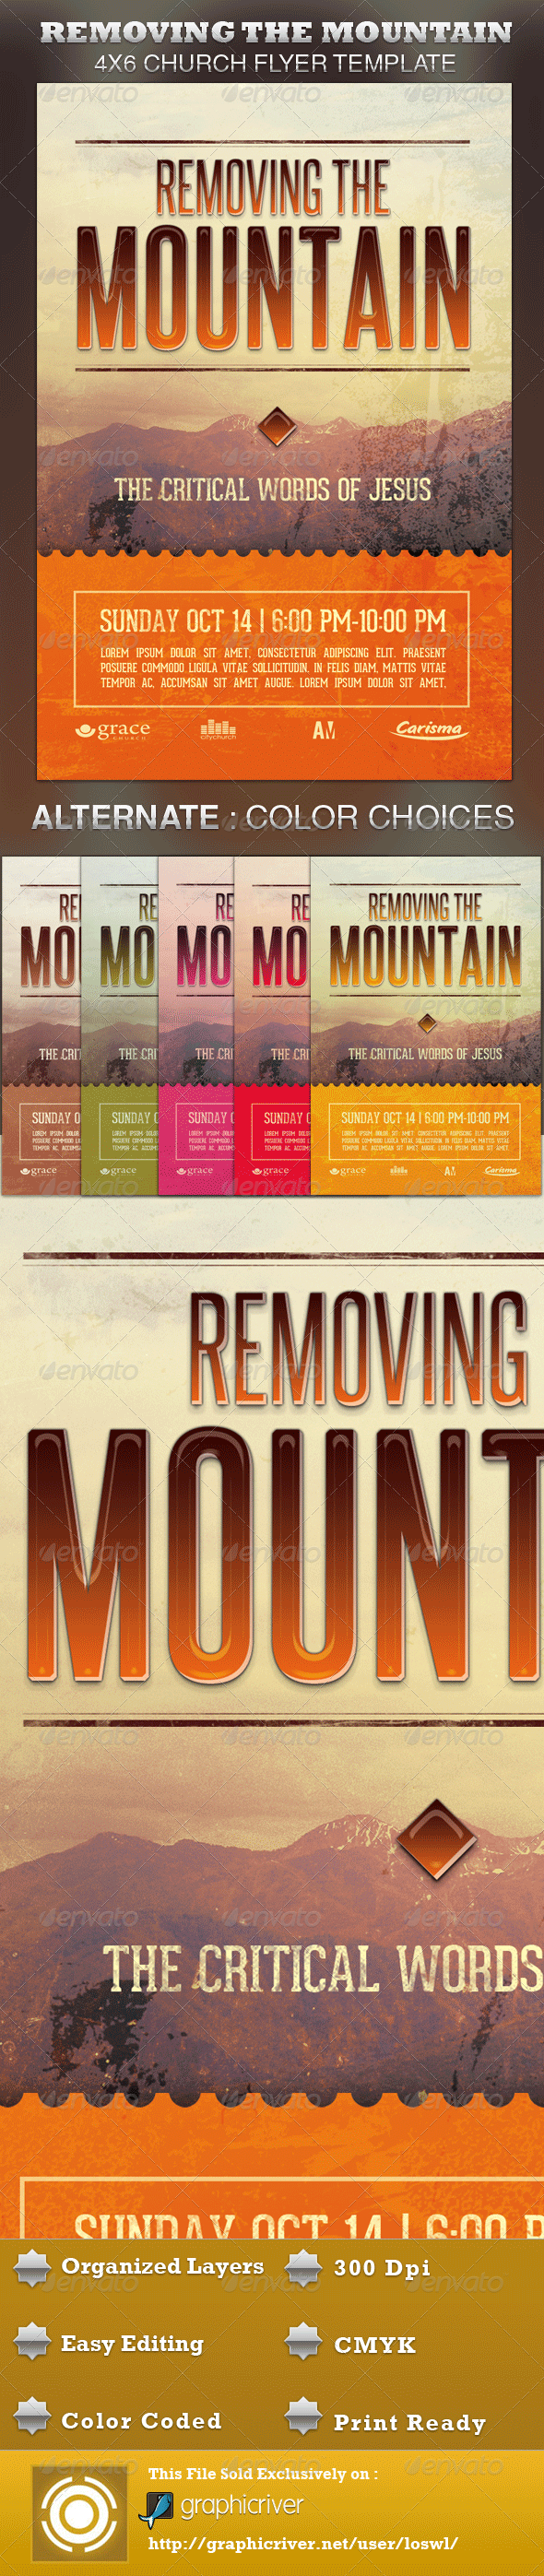 Removing the Mountain Church Flyer Template - Church Flyers